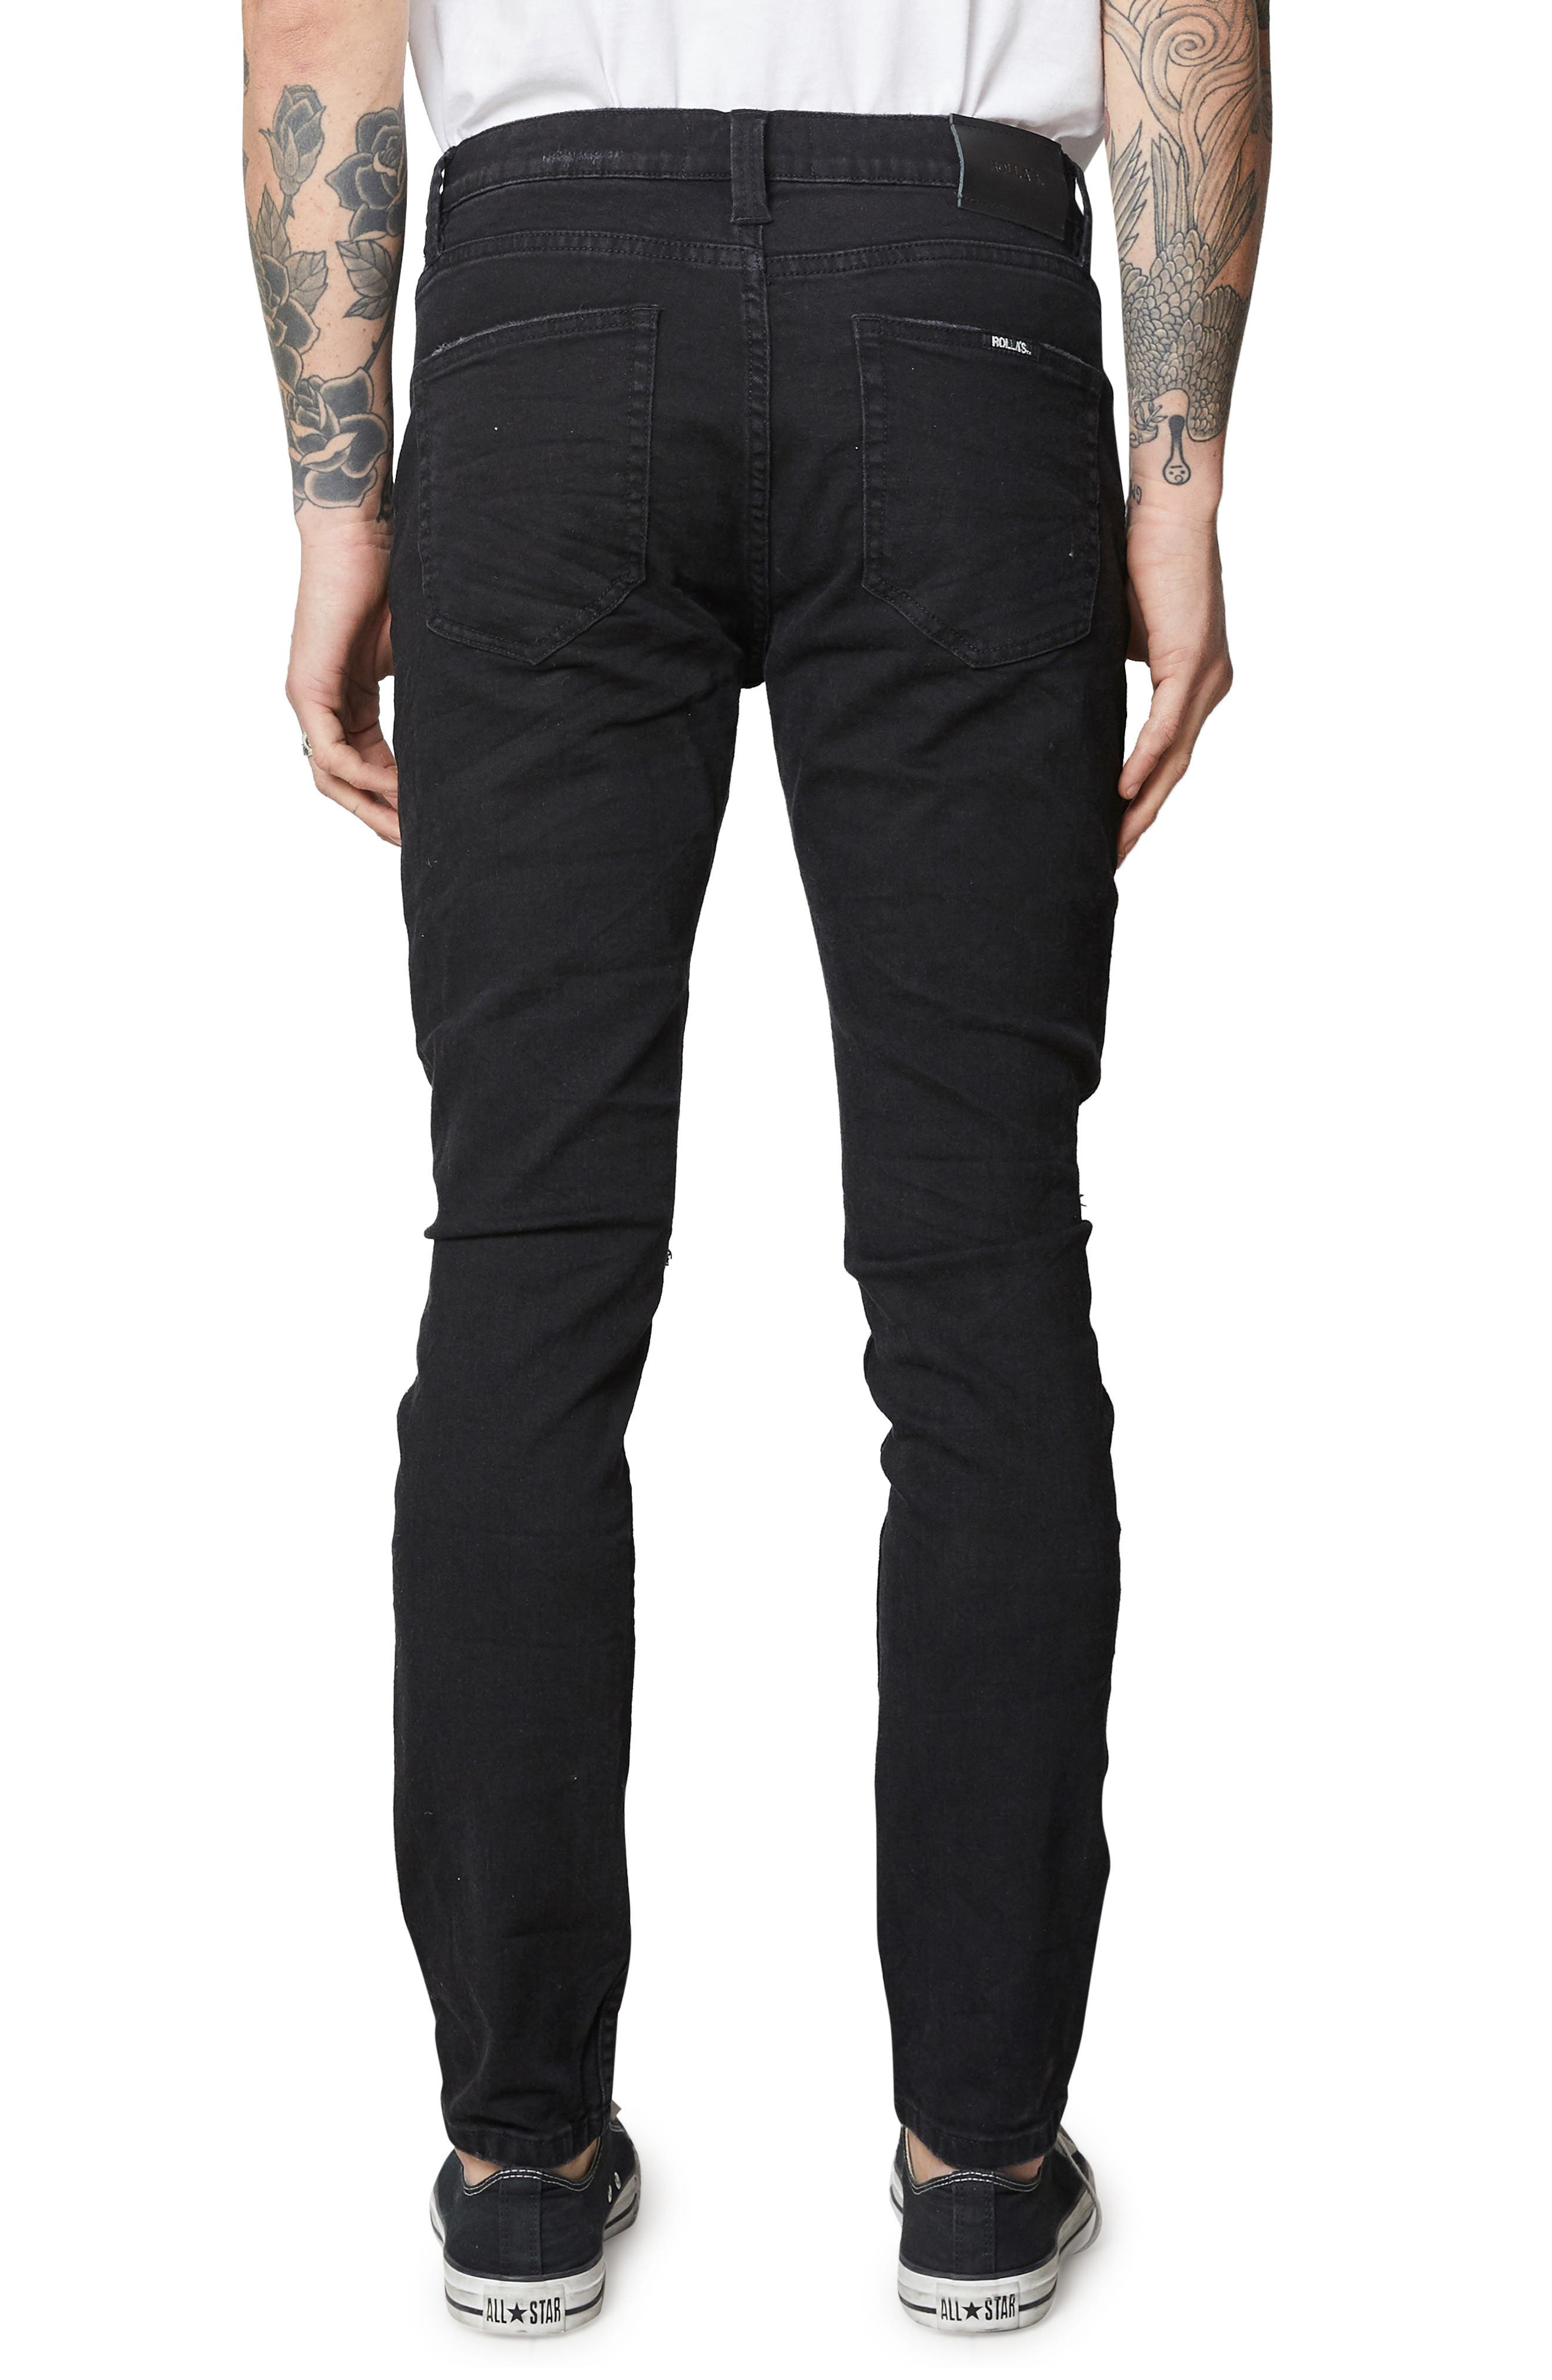 Stinger Skinny Fit Jeans,                             Alternate thumbnail 2, color,                             BLACK RIP